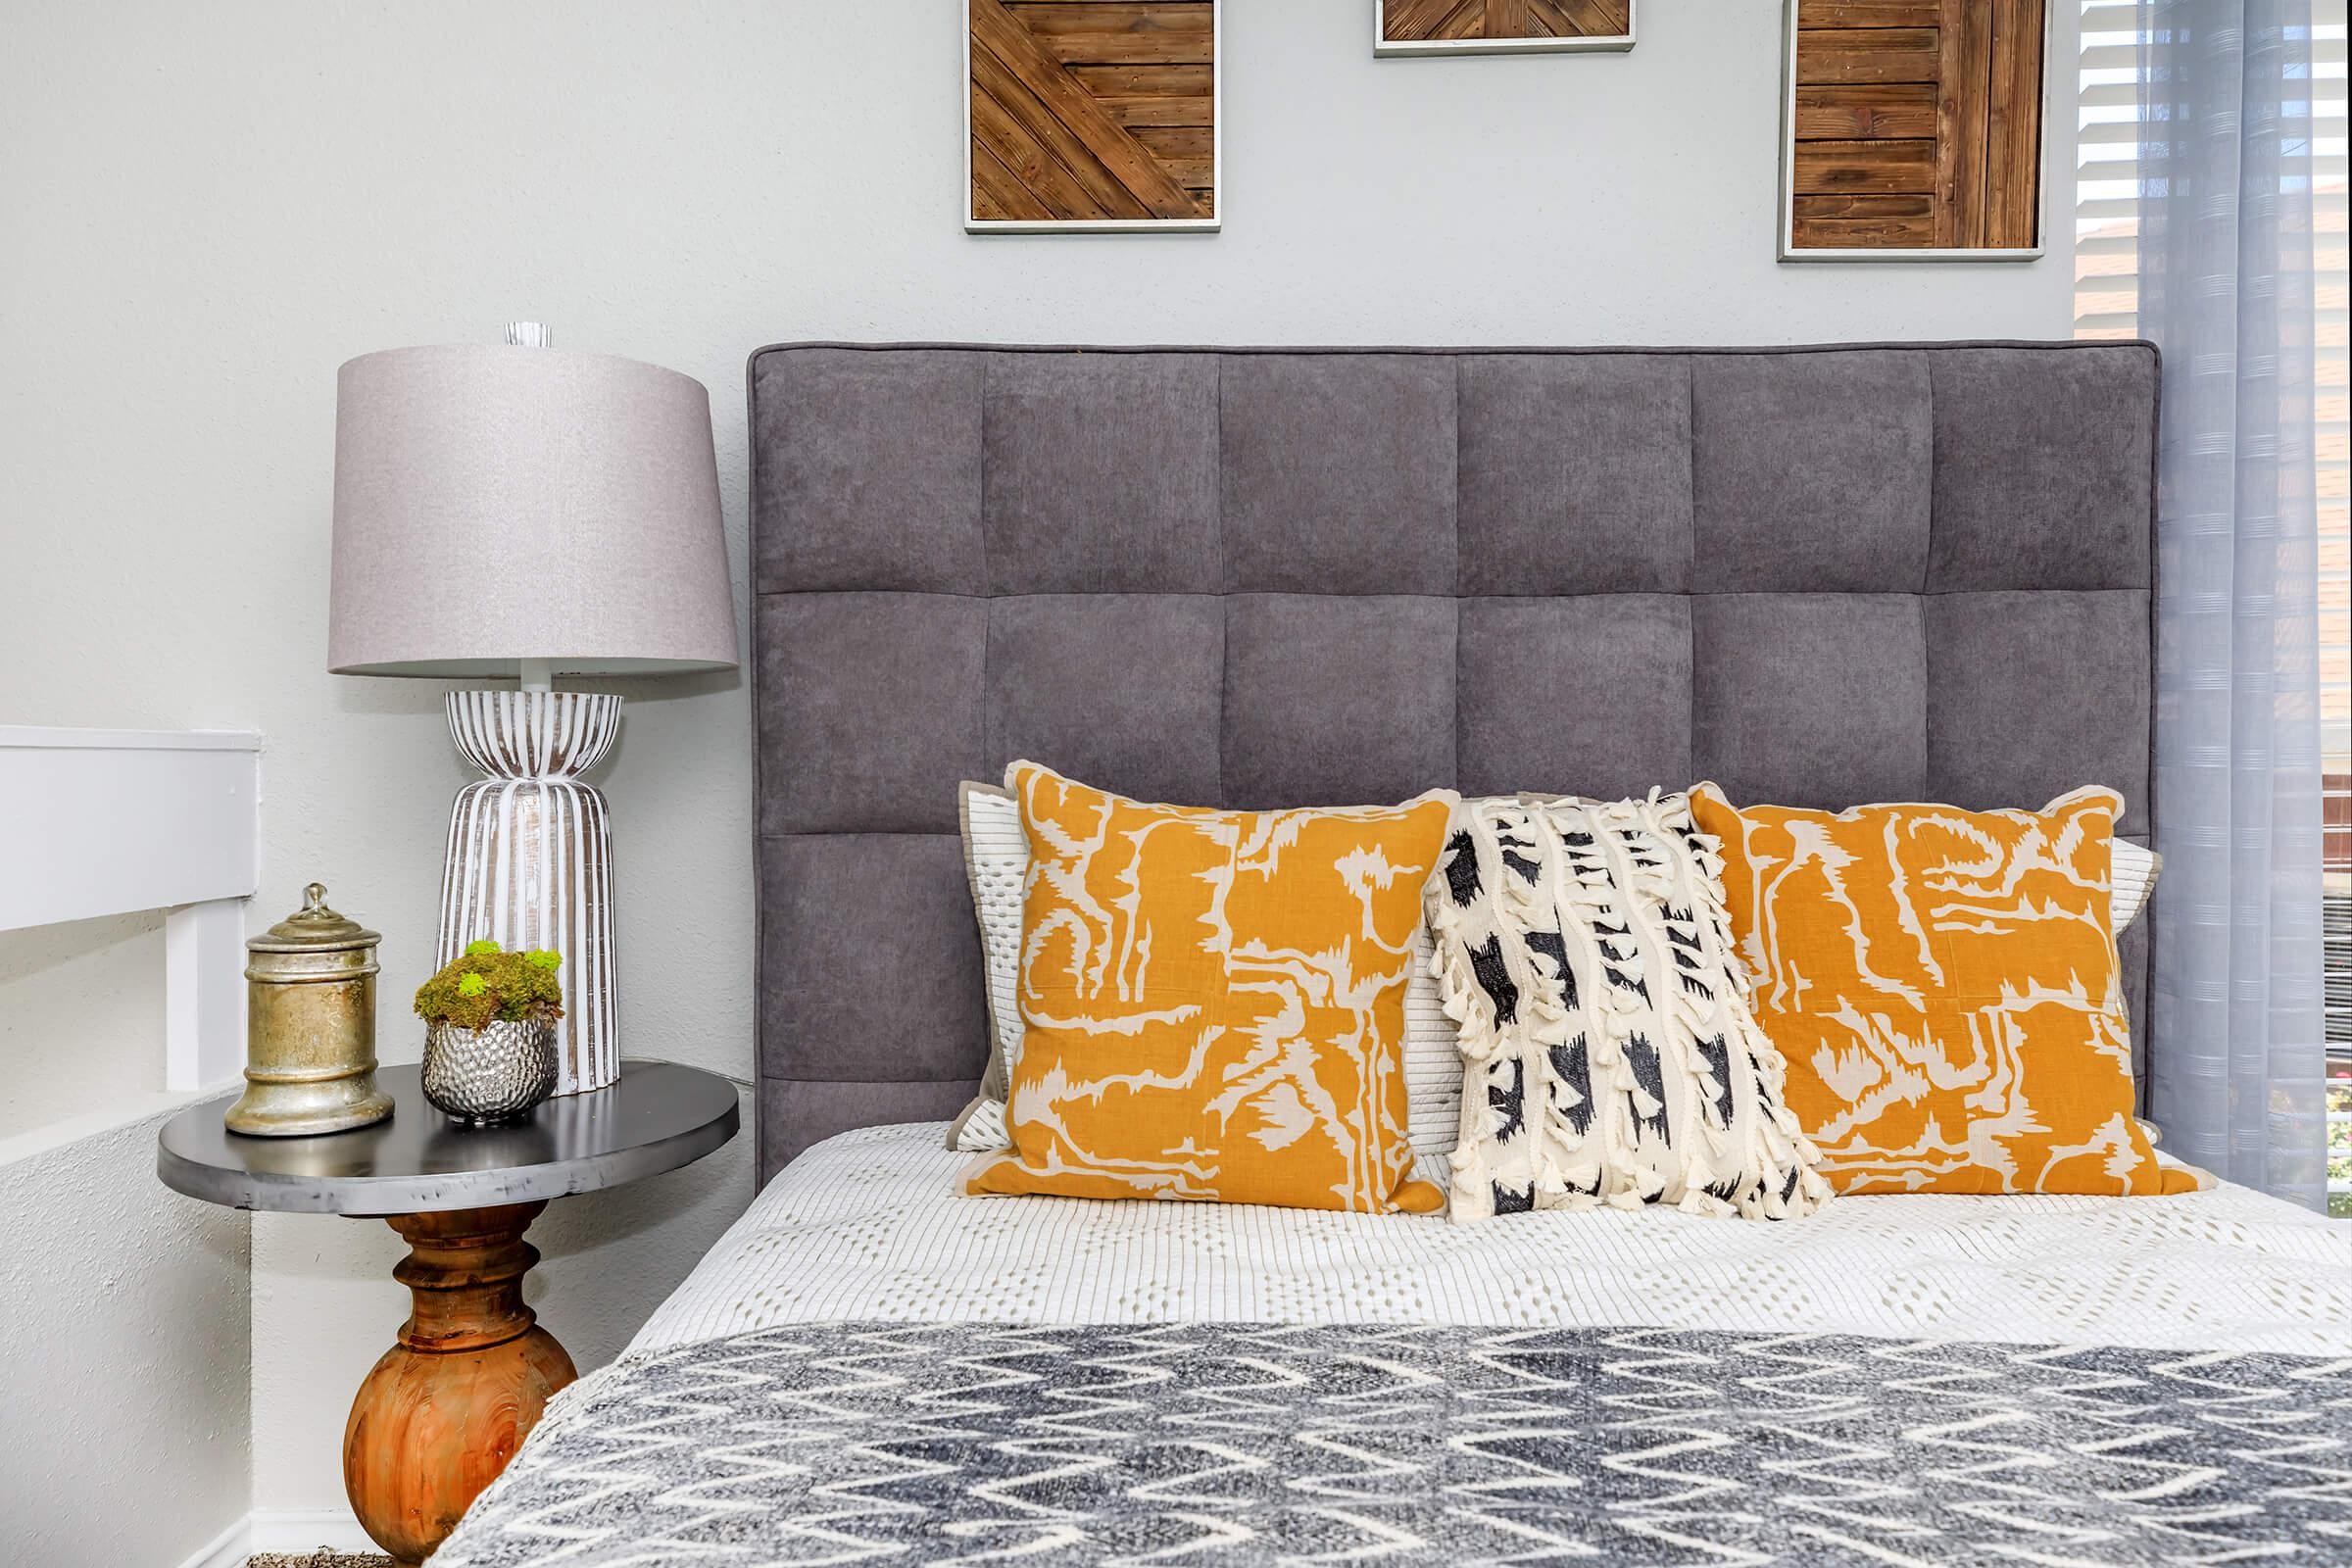 a bedroom with a glass of orange juice